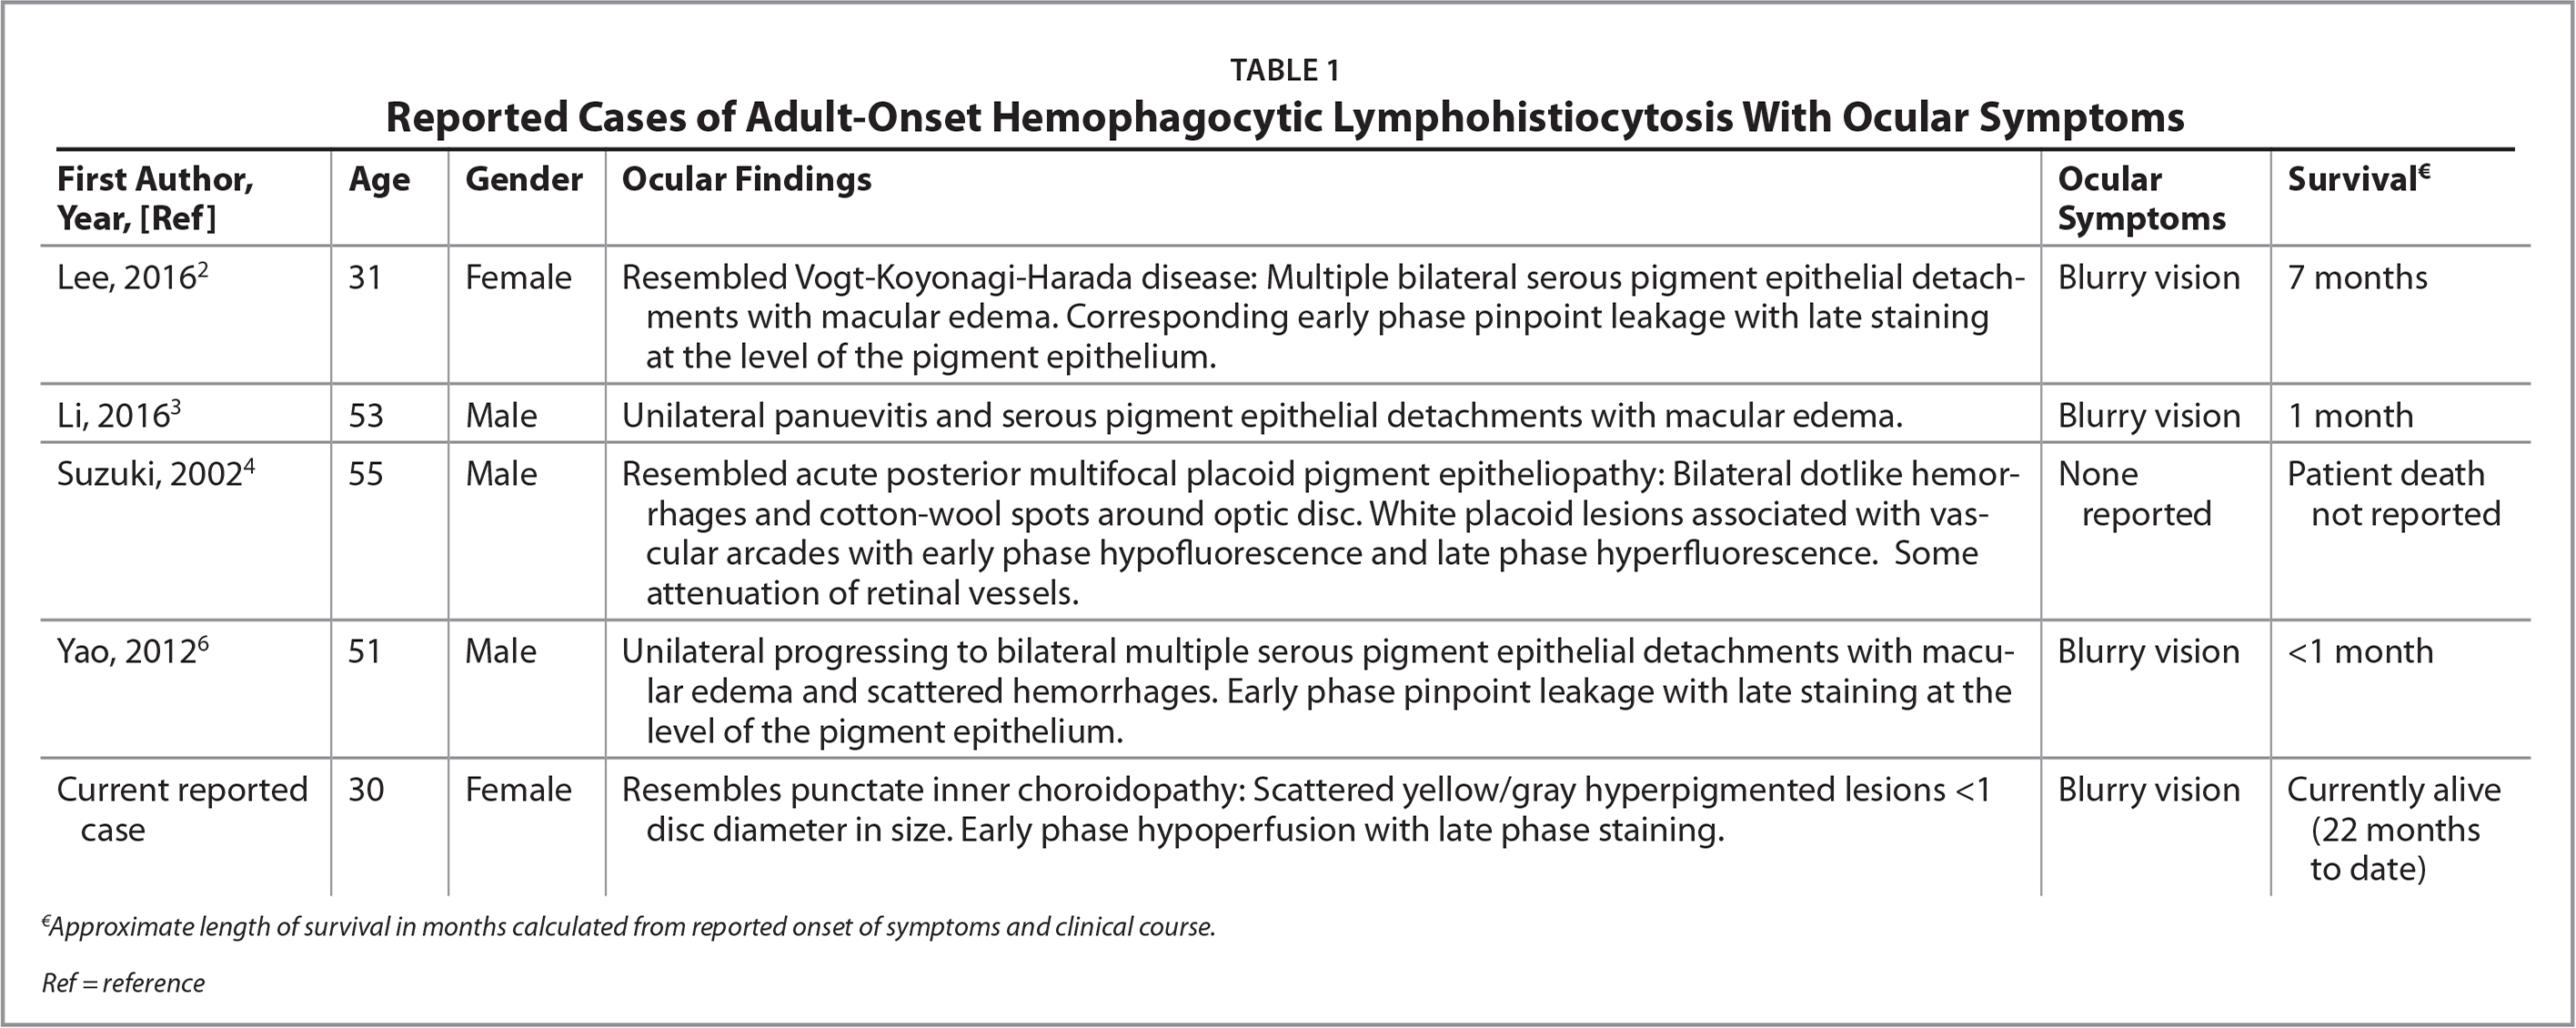 Reported Cases of Adult-Onset Hemophagocytic Lymphohistiocytosis With Ocular Symptoms